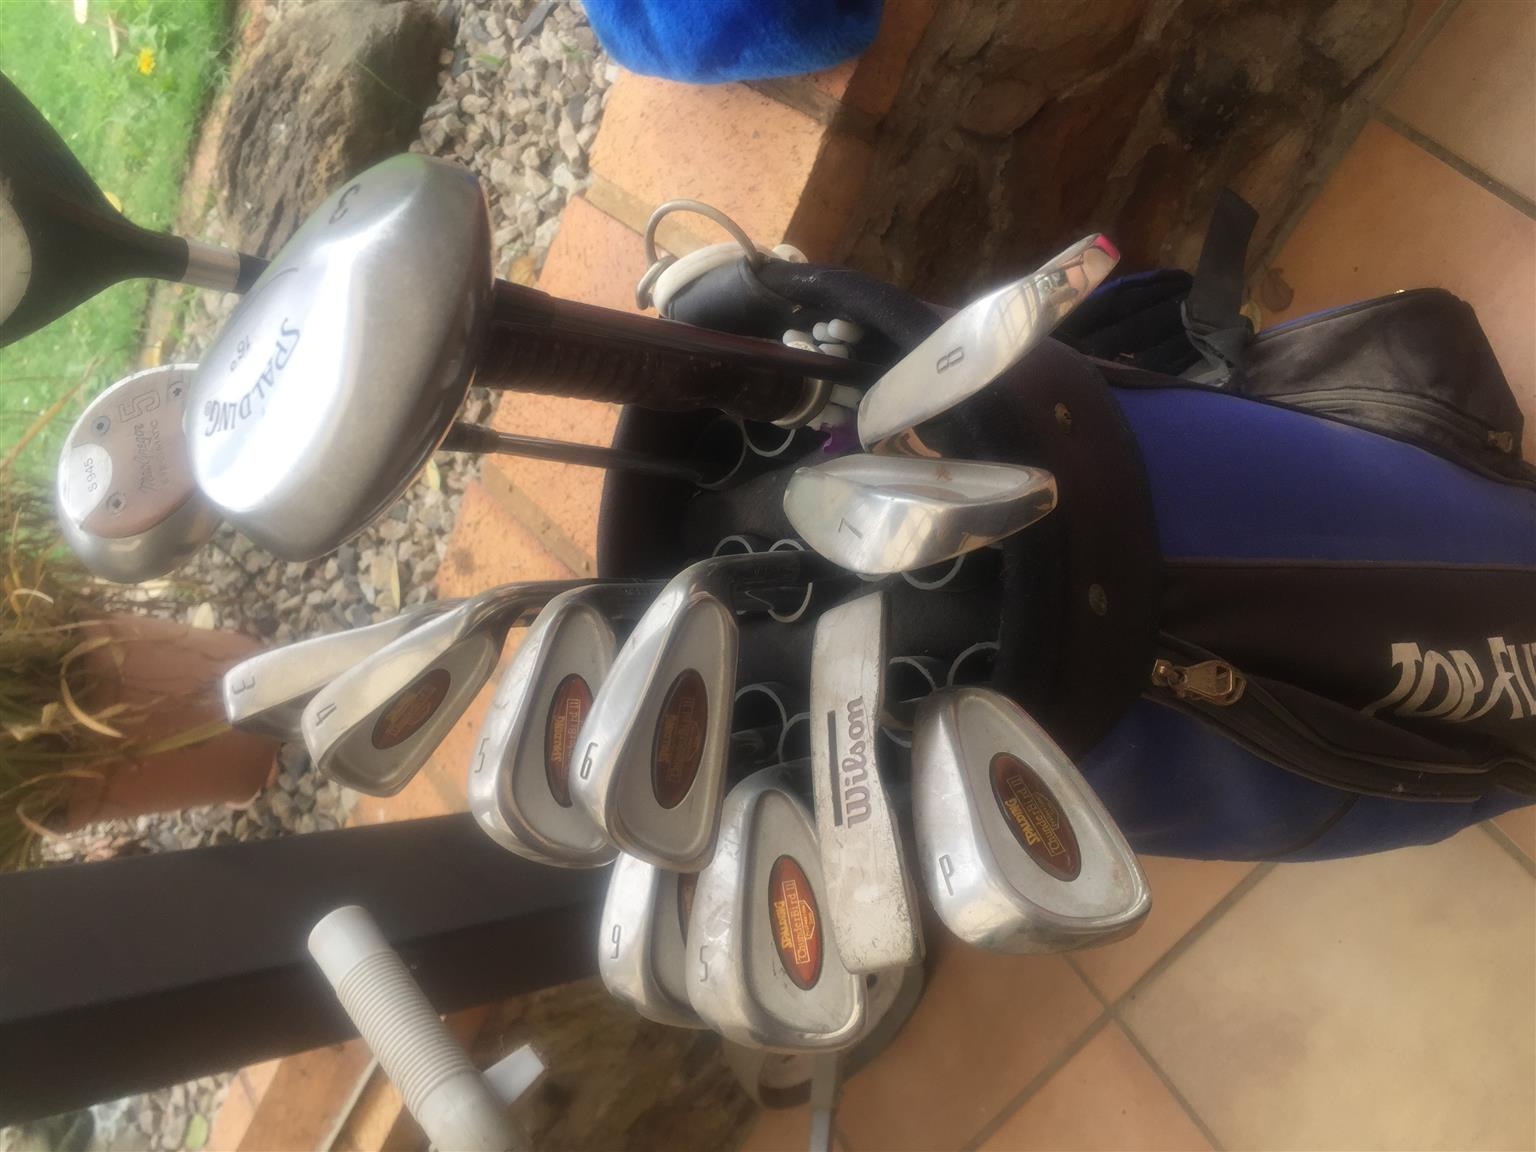 Golf clubs plus caddy and shoes